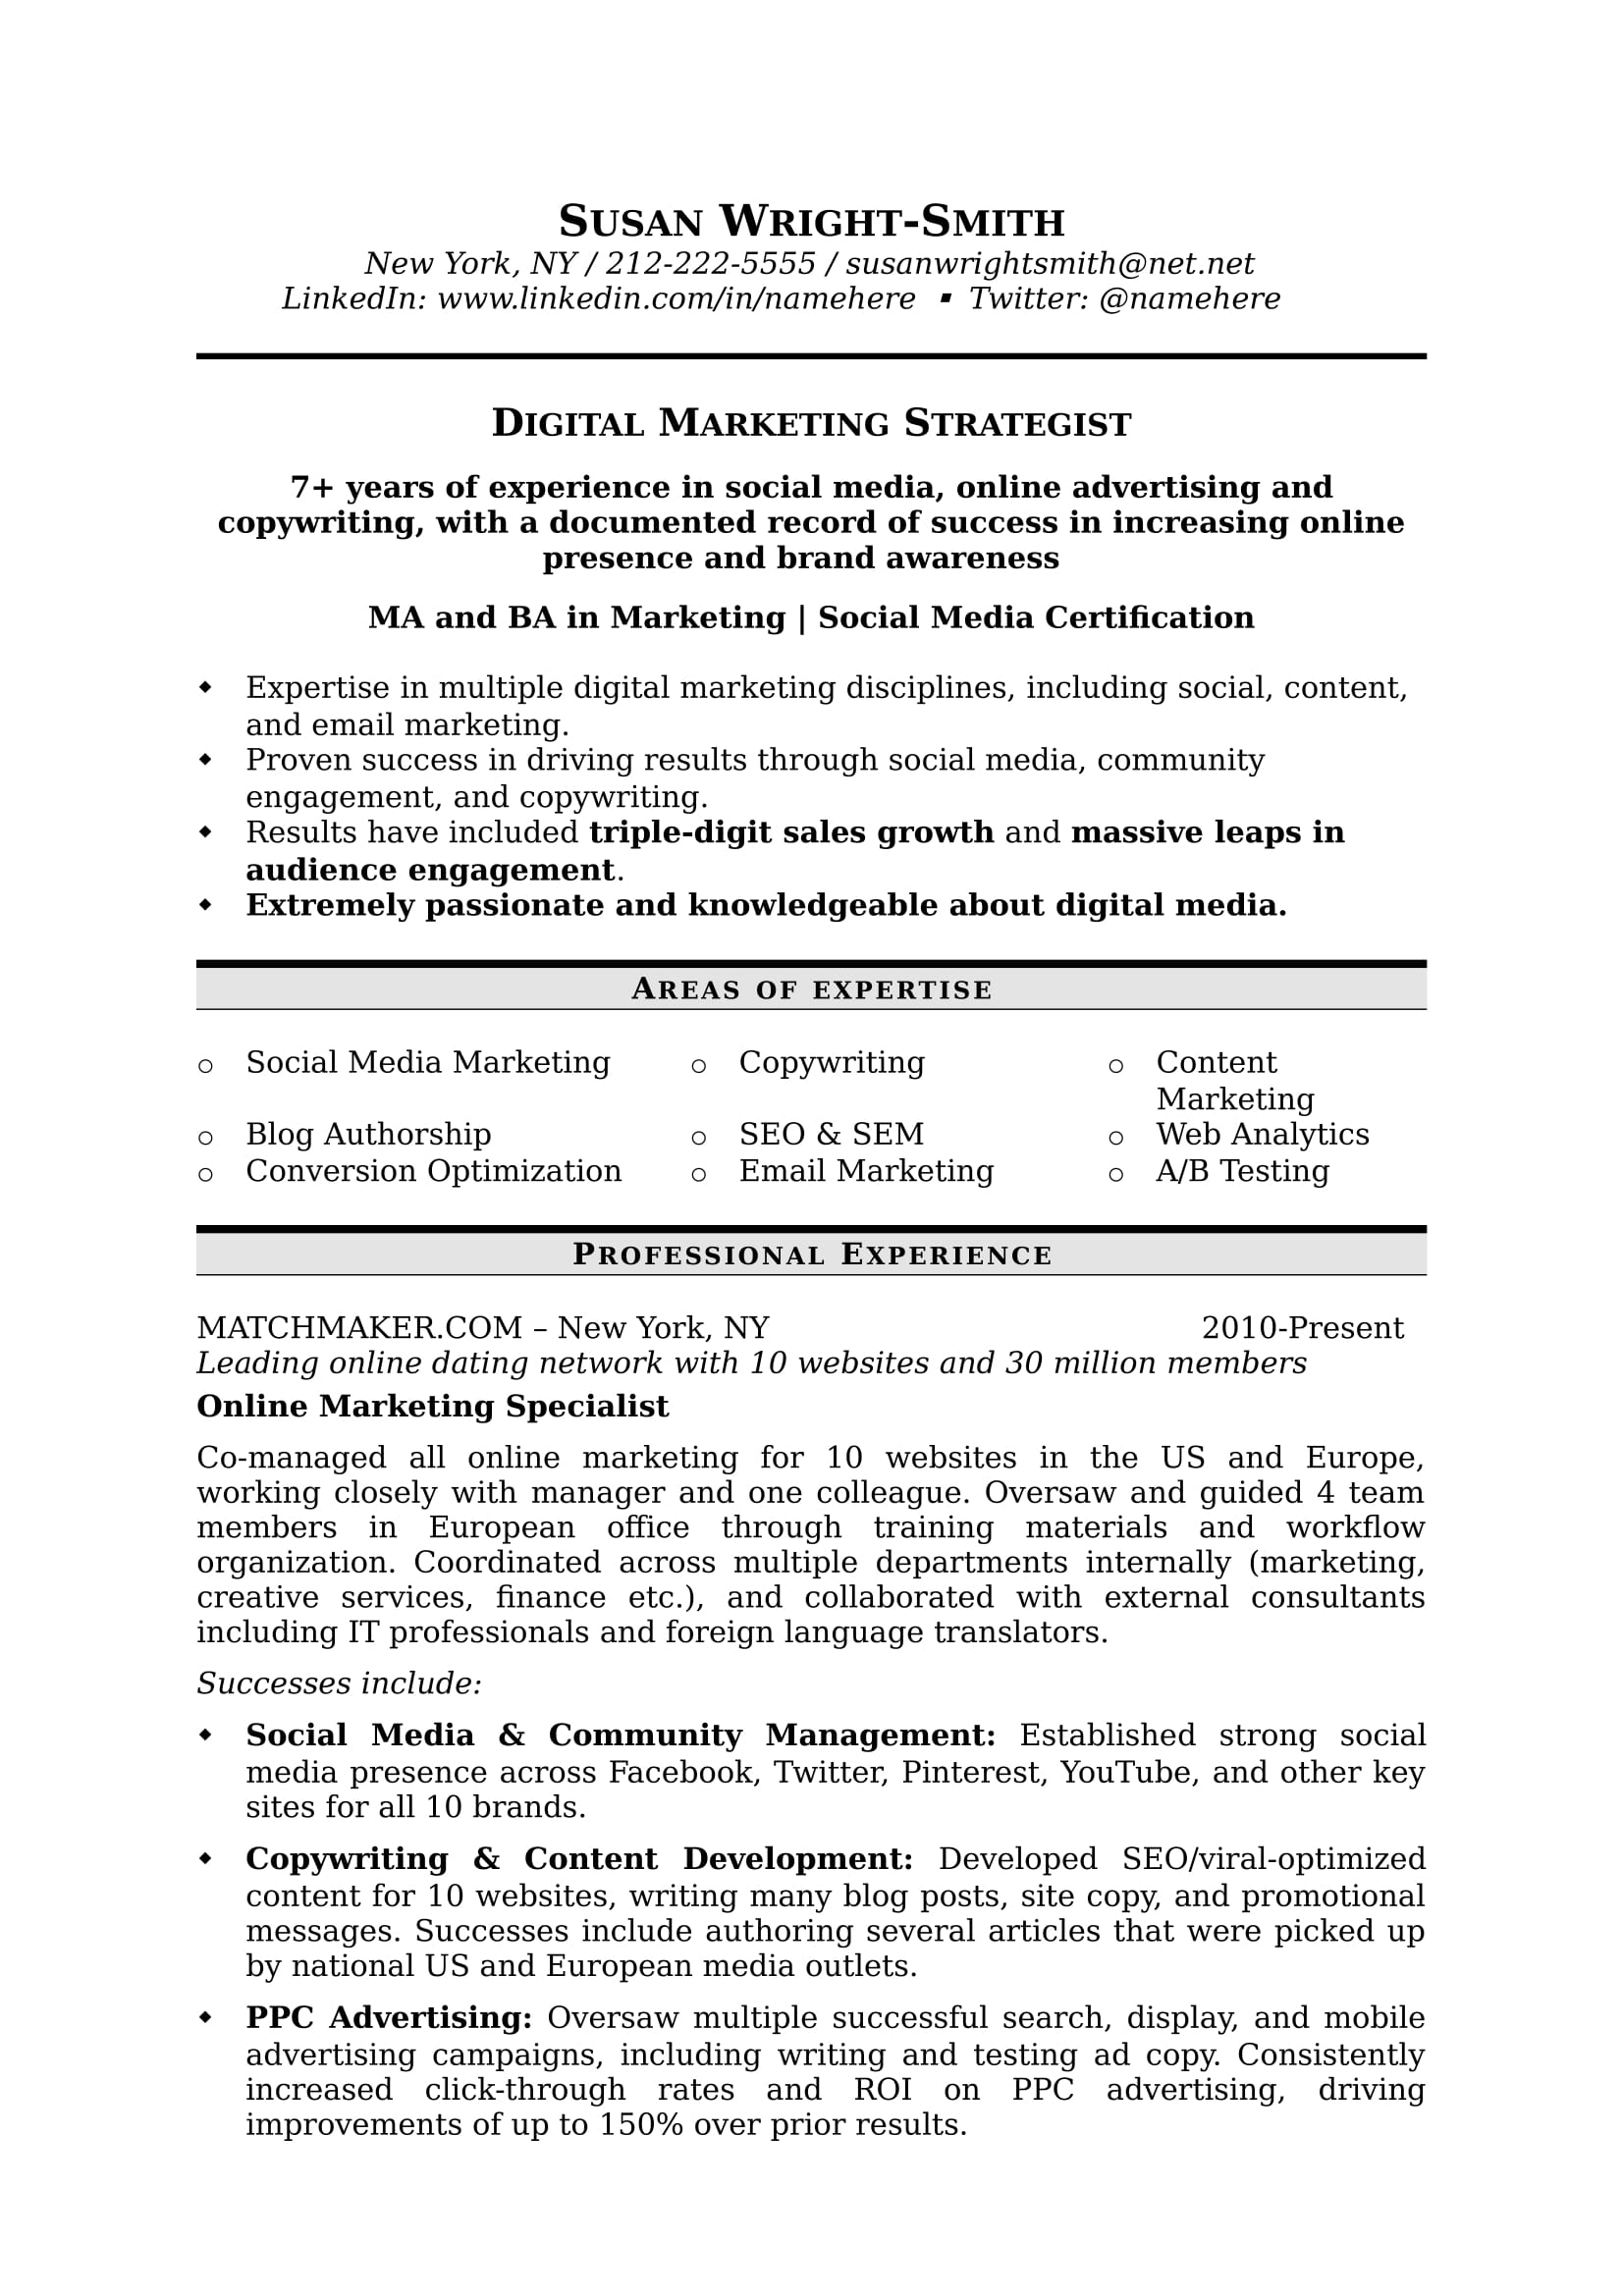 Betsey Merkel Platform Design Strategist Resume.  Digital Strategist Resume